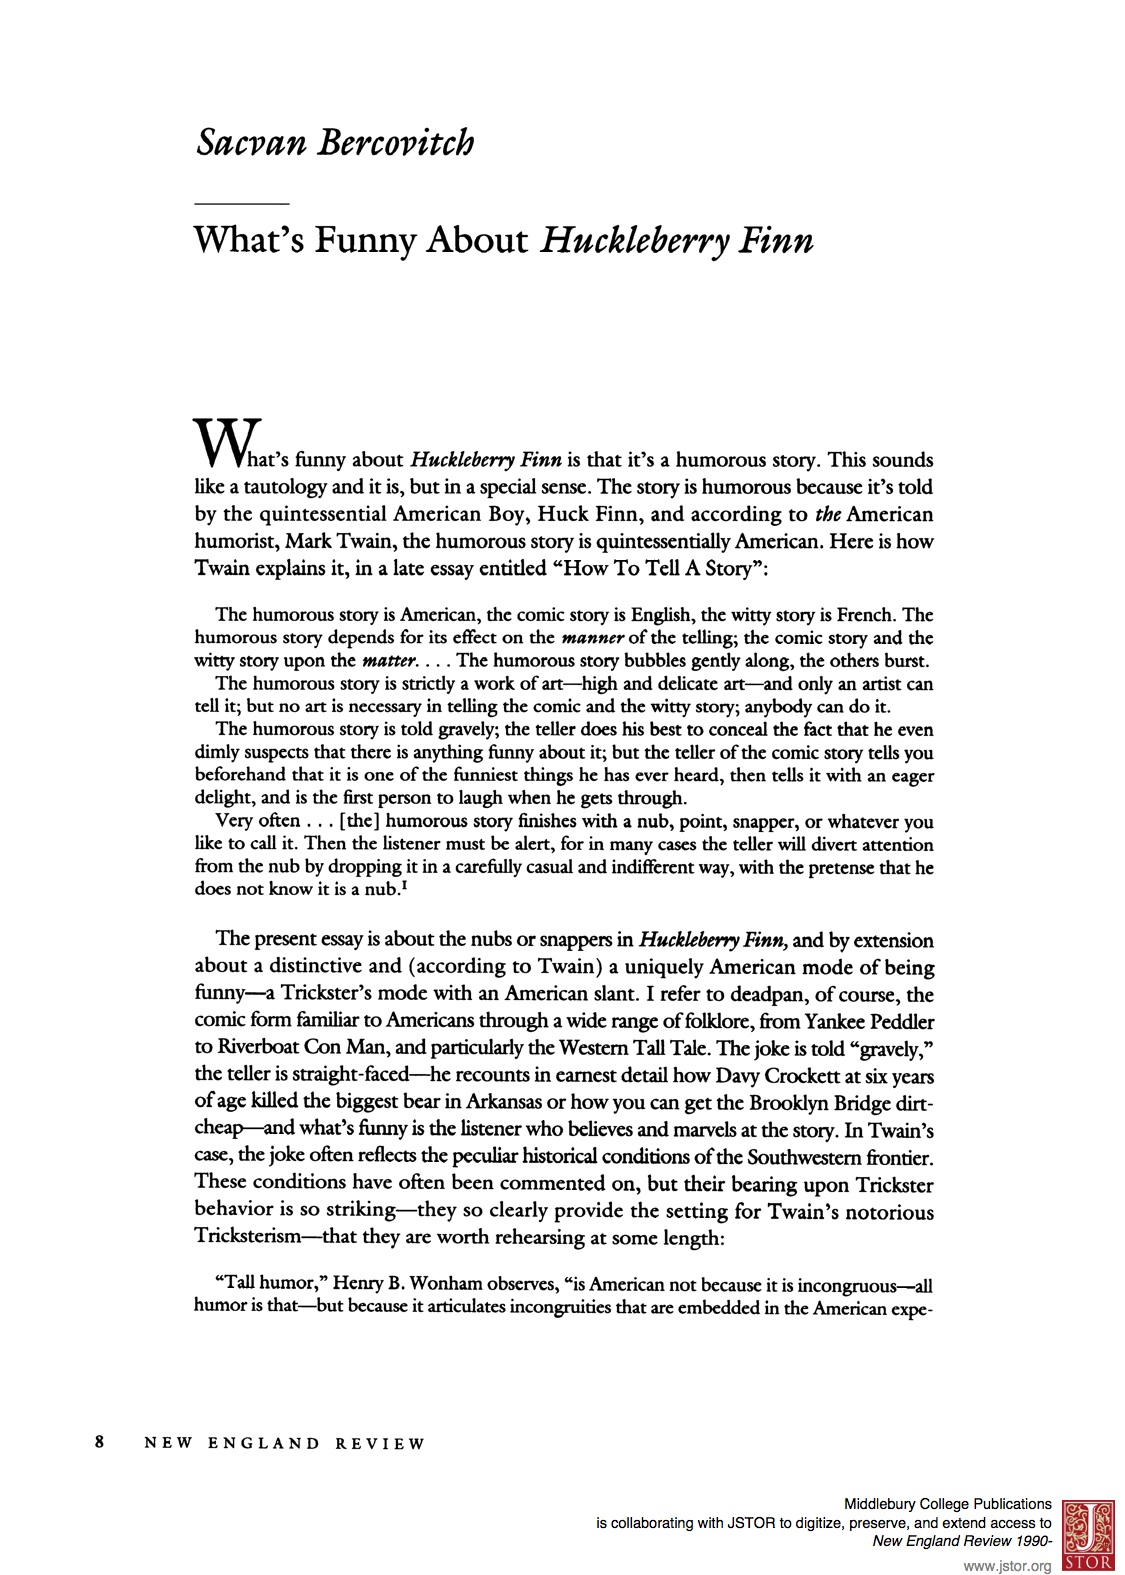 essays on the adventures of huckleberry Huck finn is a young boy that lives in a very dysfunctional family he has a drunk for a father that abandoned huck when he was a little boy huck practically raised himself from the ground up and never learned right from wrong in the novel adventures of huckleberry finn, huck never really had a good father and did not.